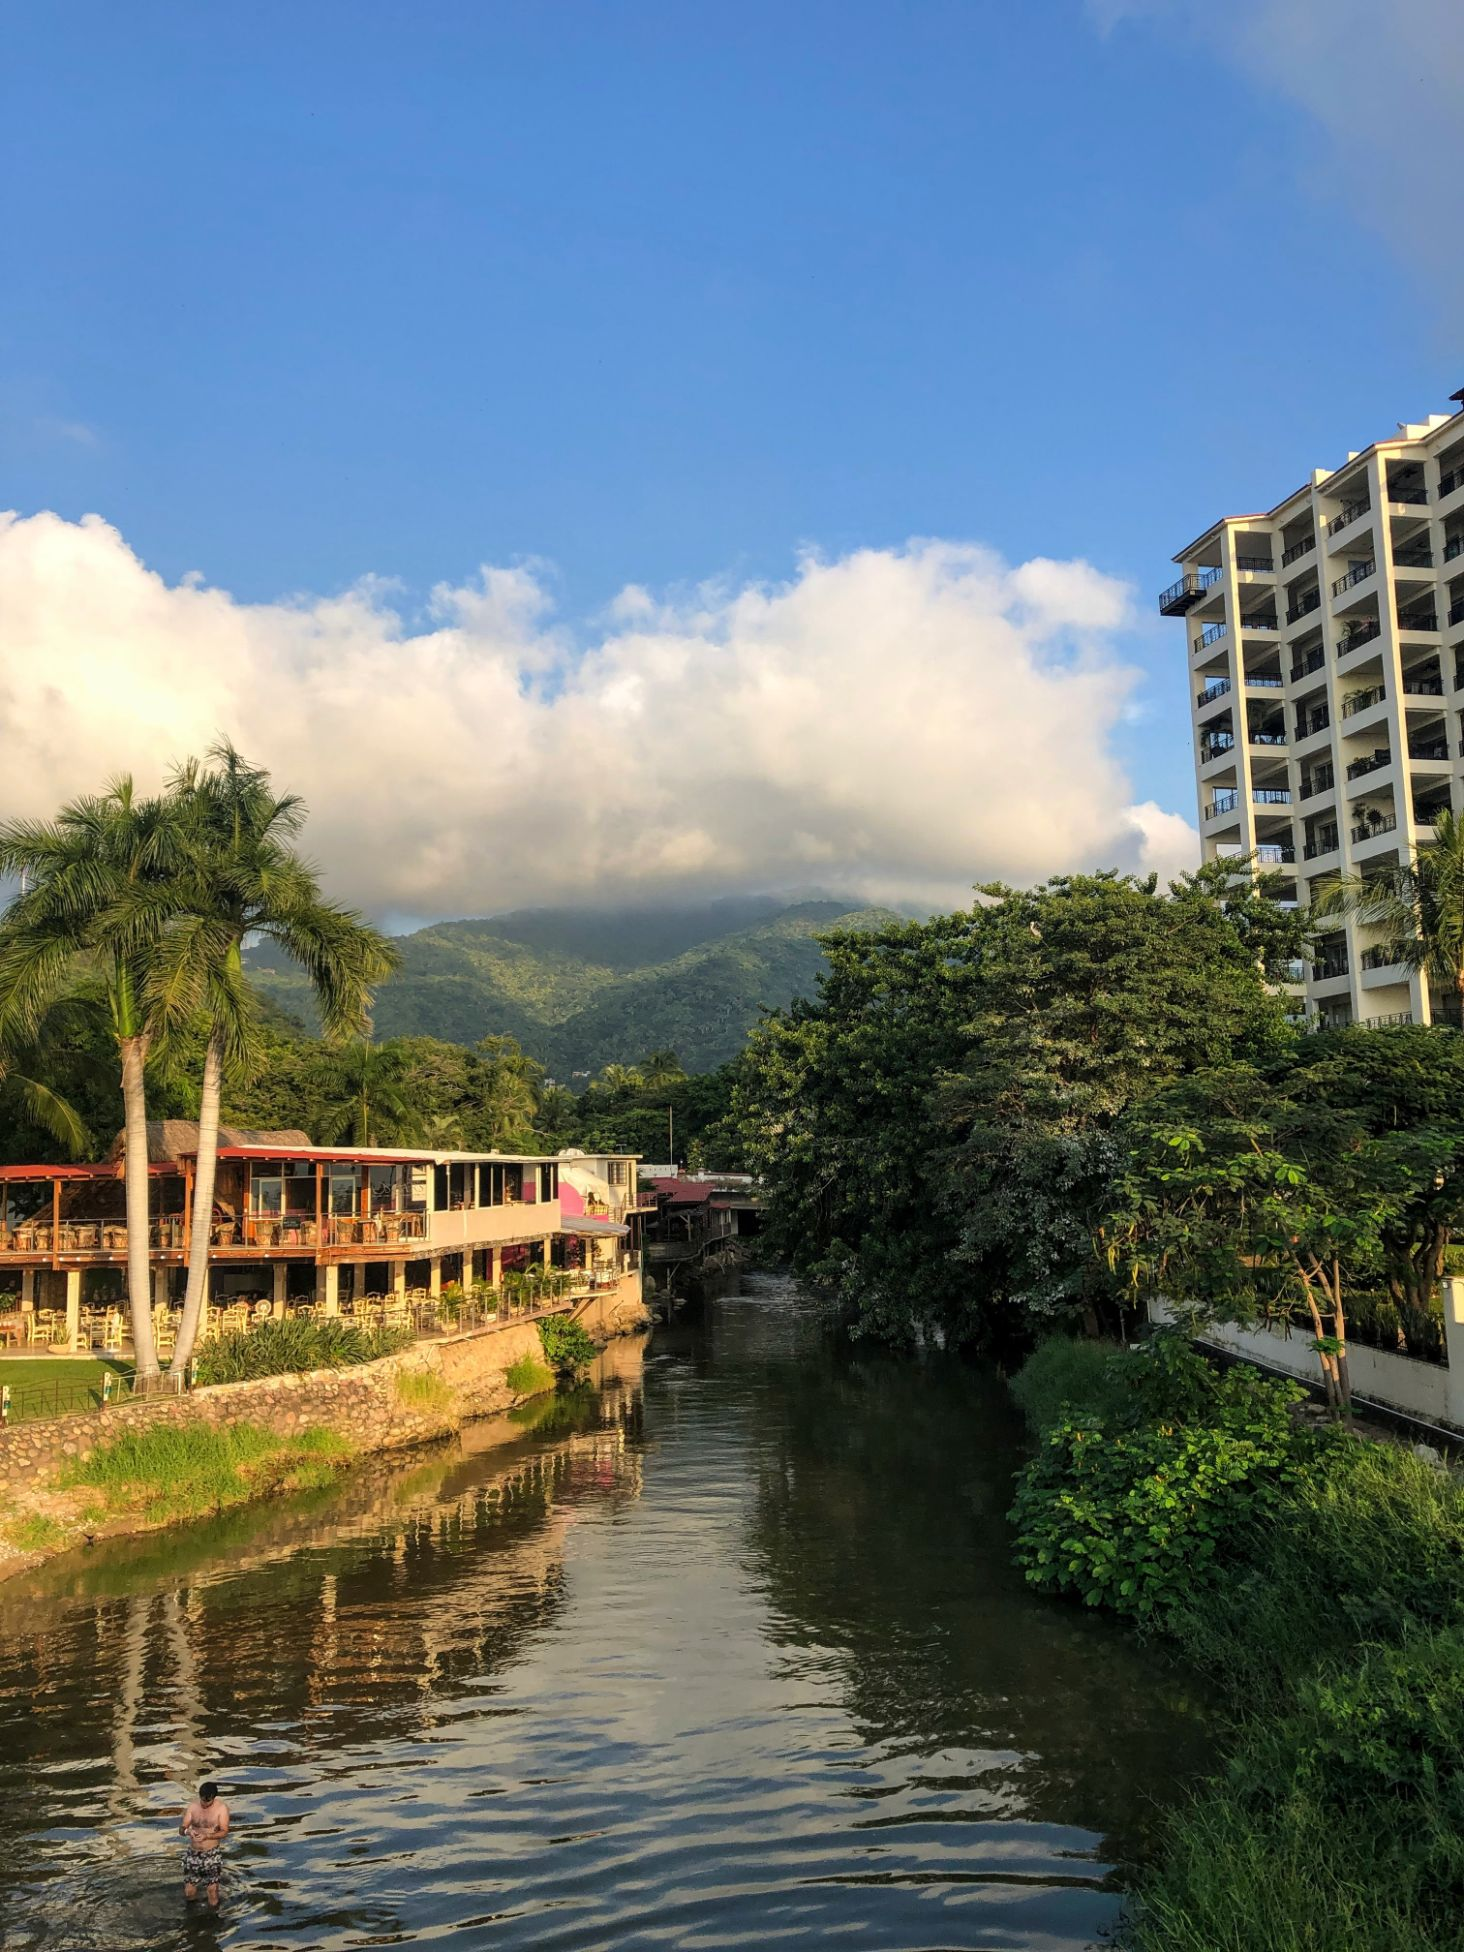 Rio Cuale River in Puerto Vallarta